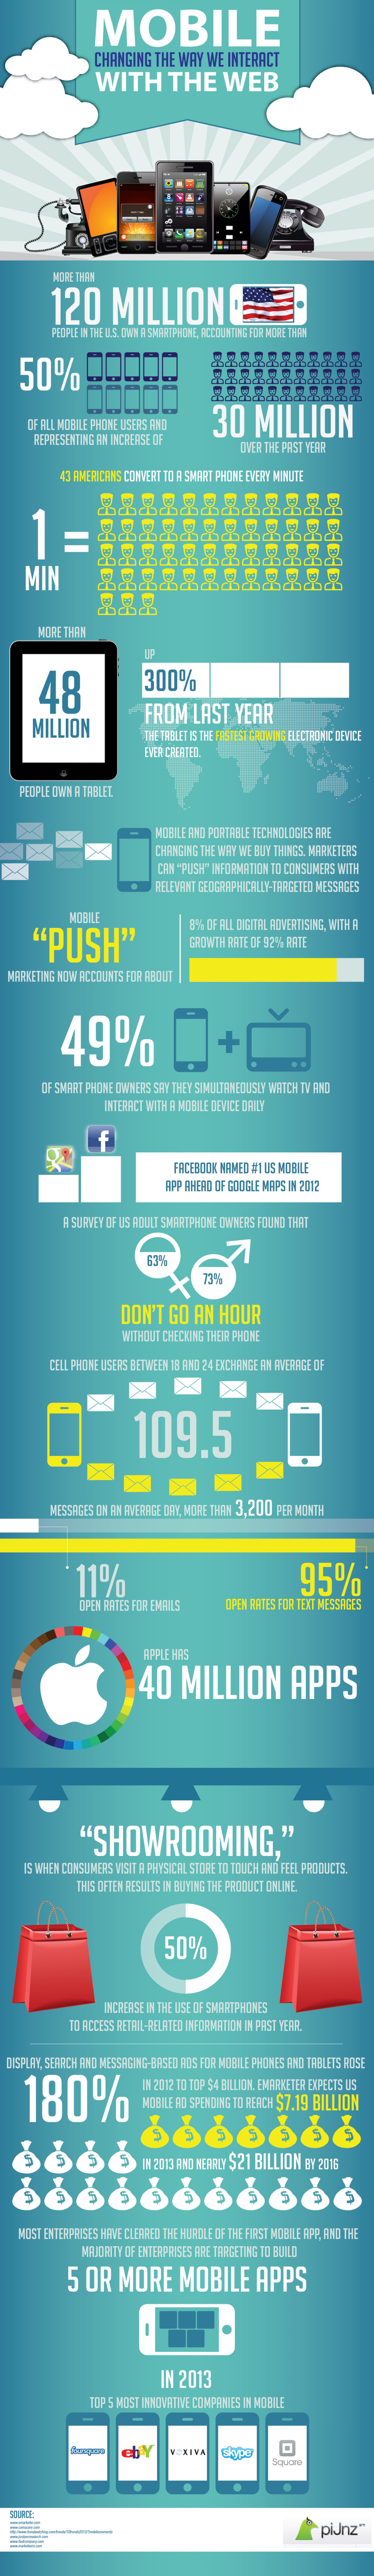 Mobile - Changing the way we interact with the web Infographic